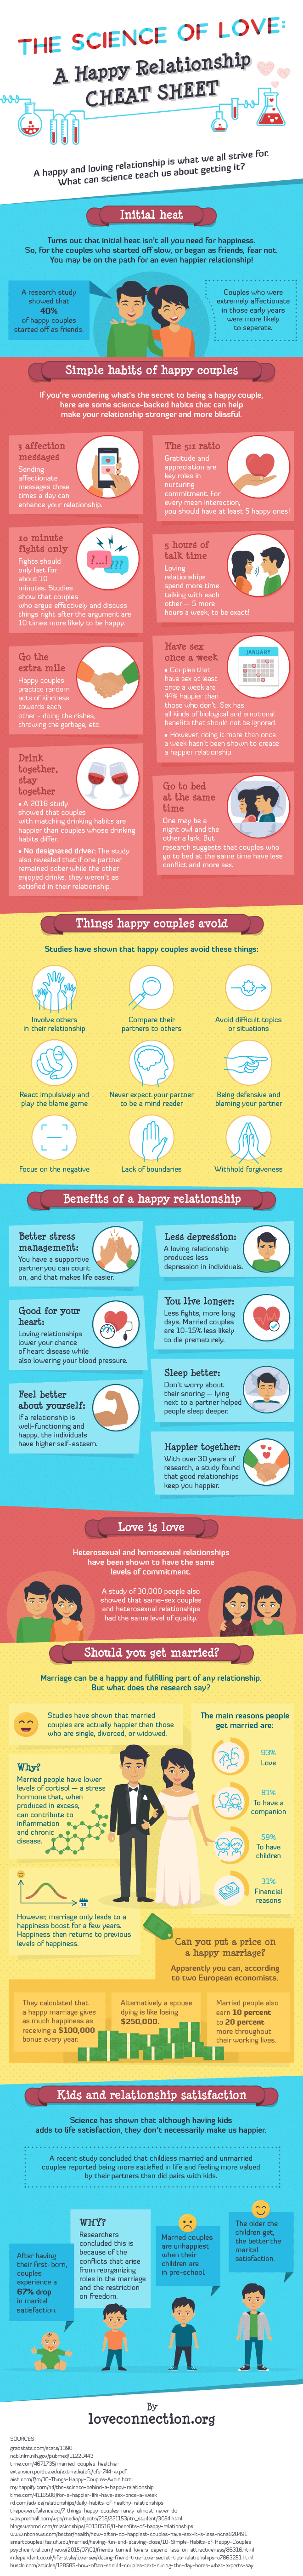 The Science of Love: A Happy Relationship Cheat Sheet #infographic